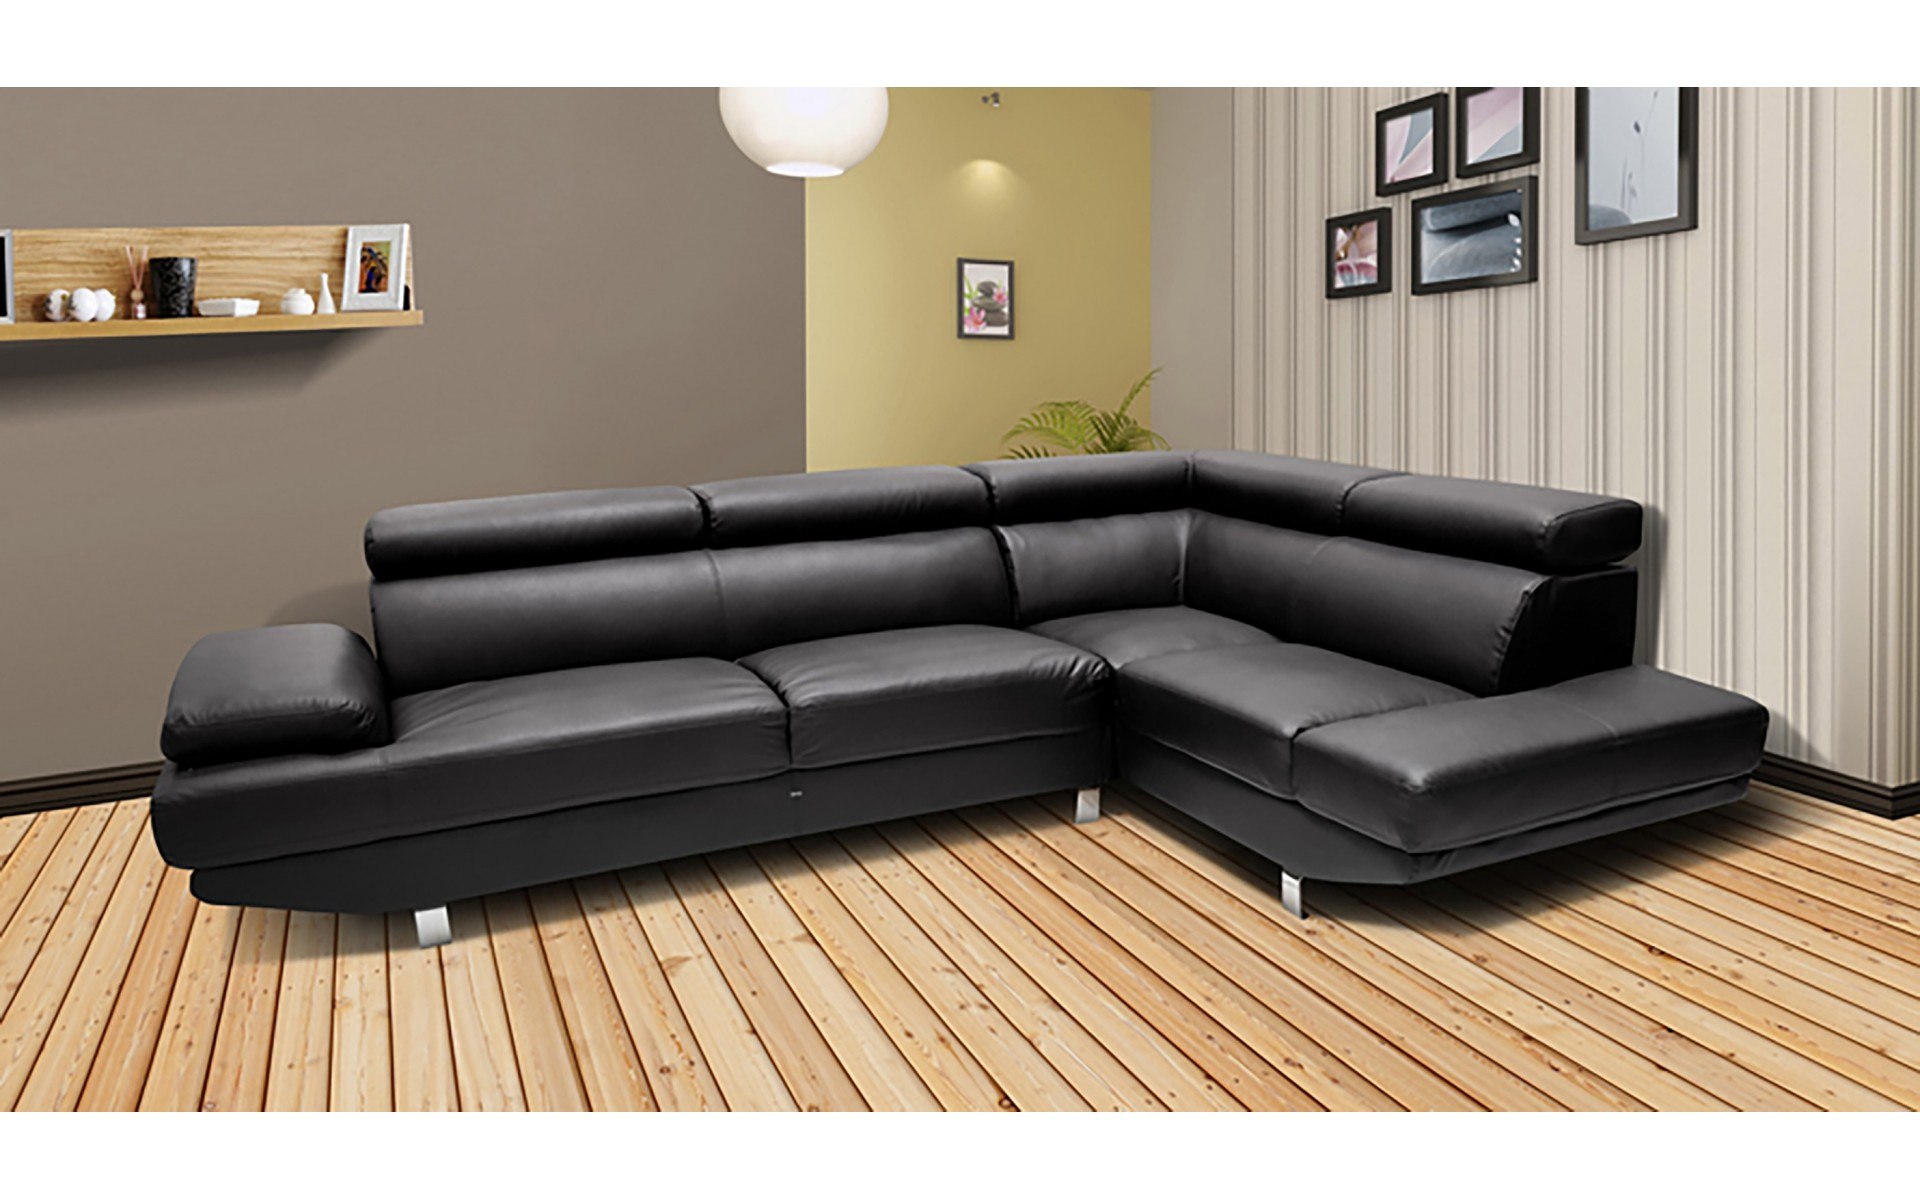 Canap d angle carr royal sofa id e de canap et for Monsieur meuble canape d angle cuir